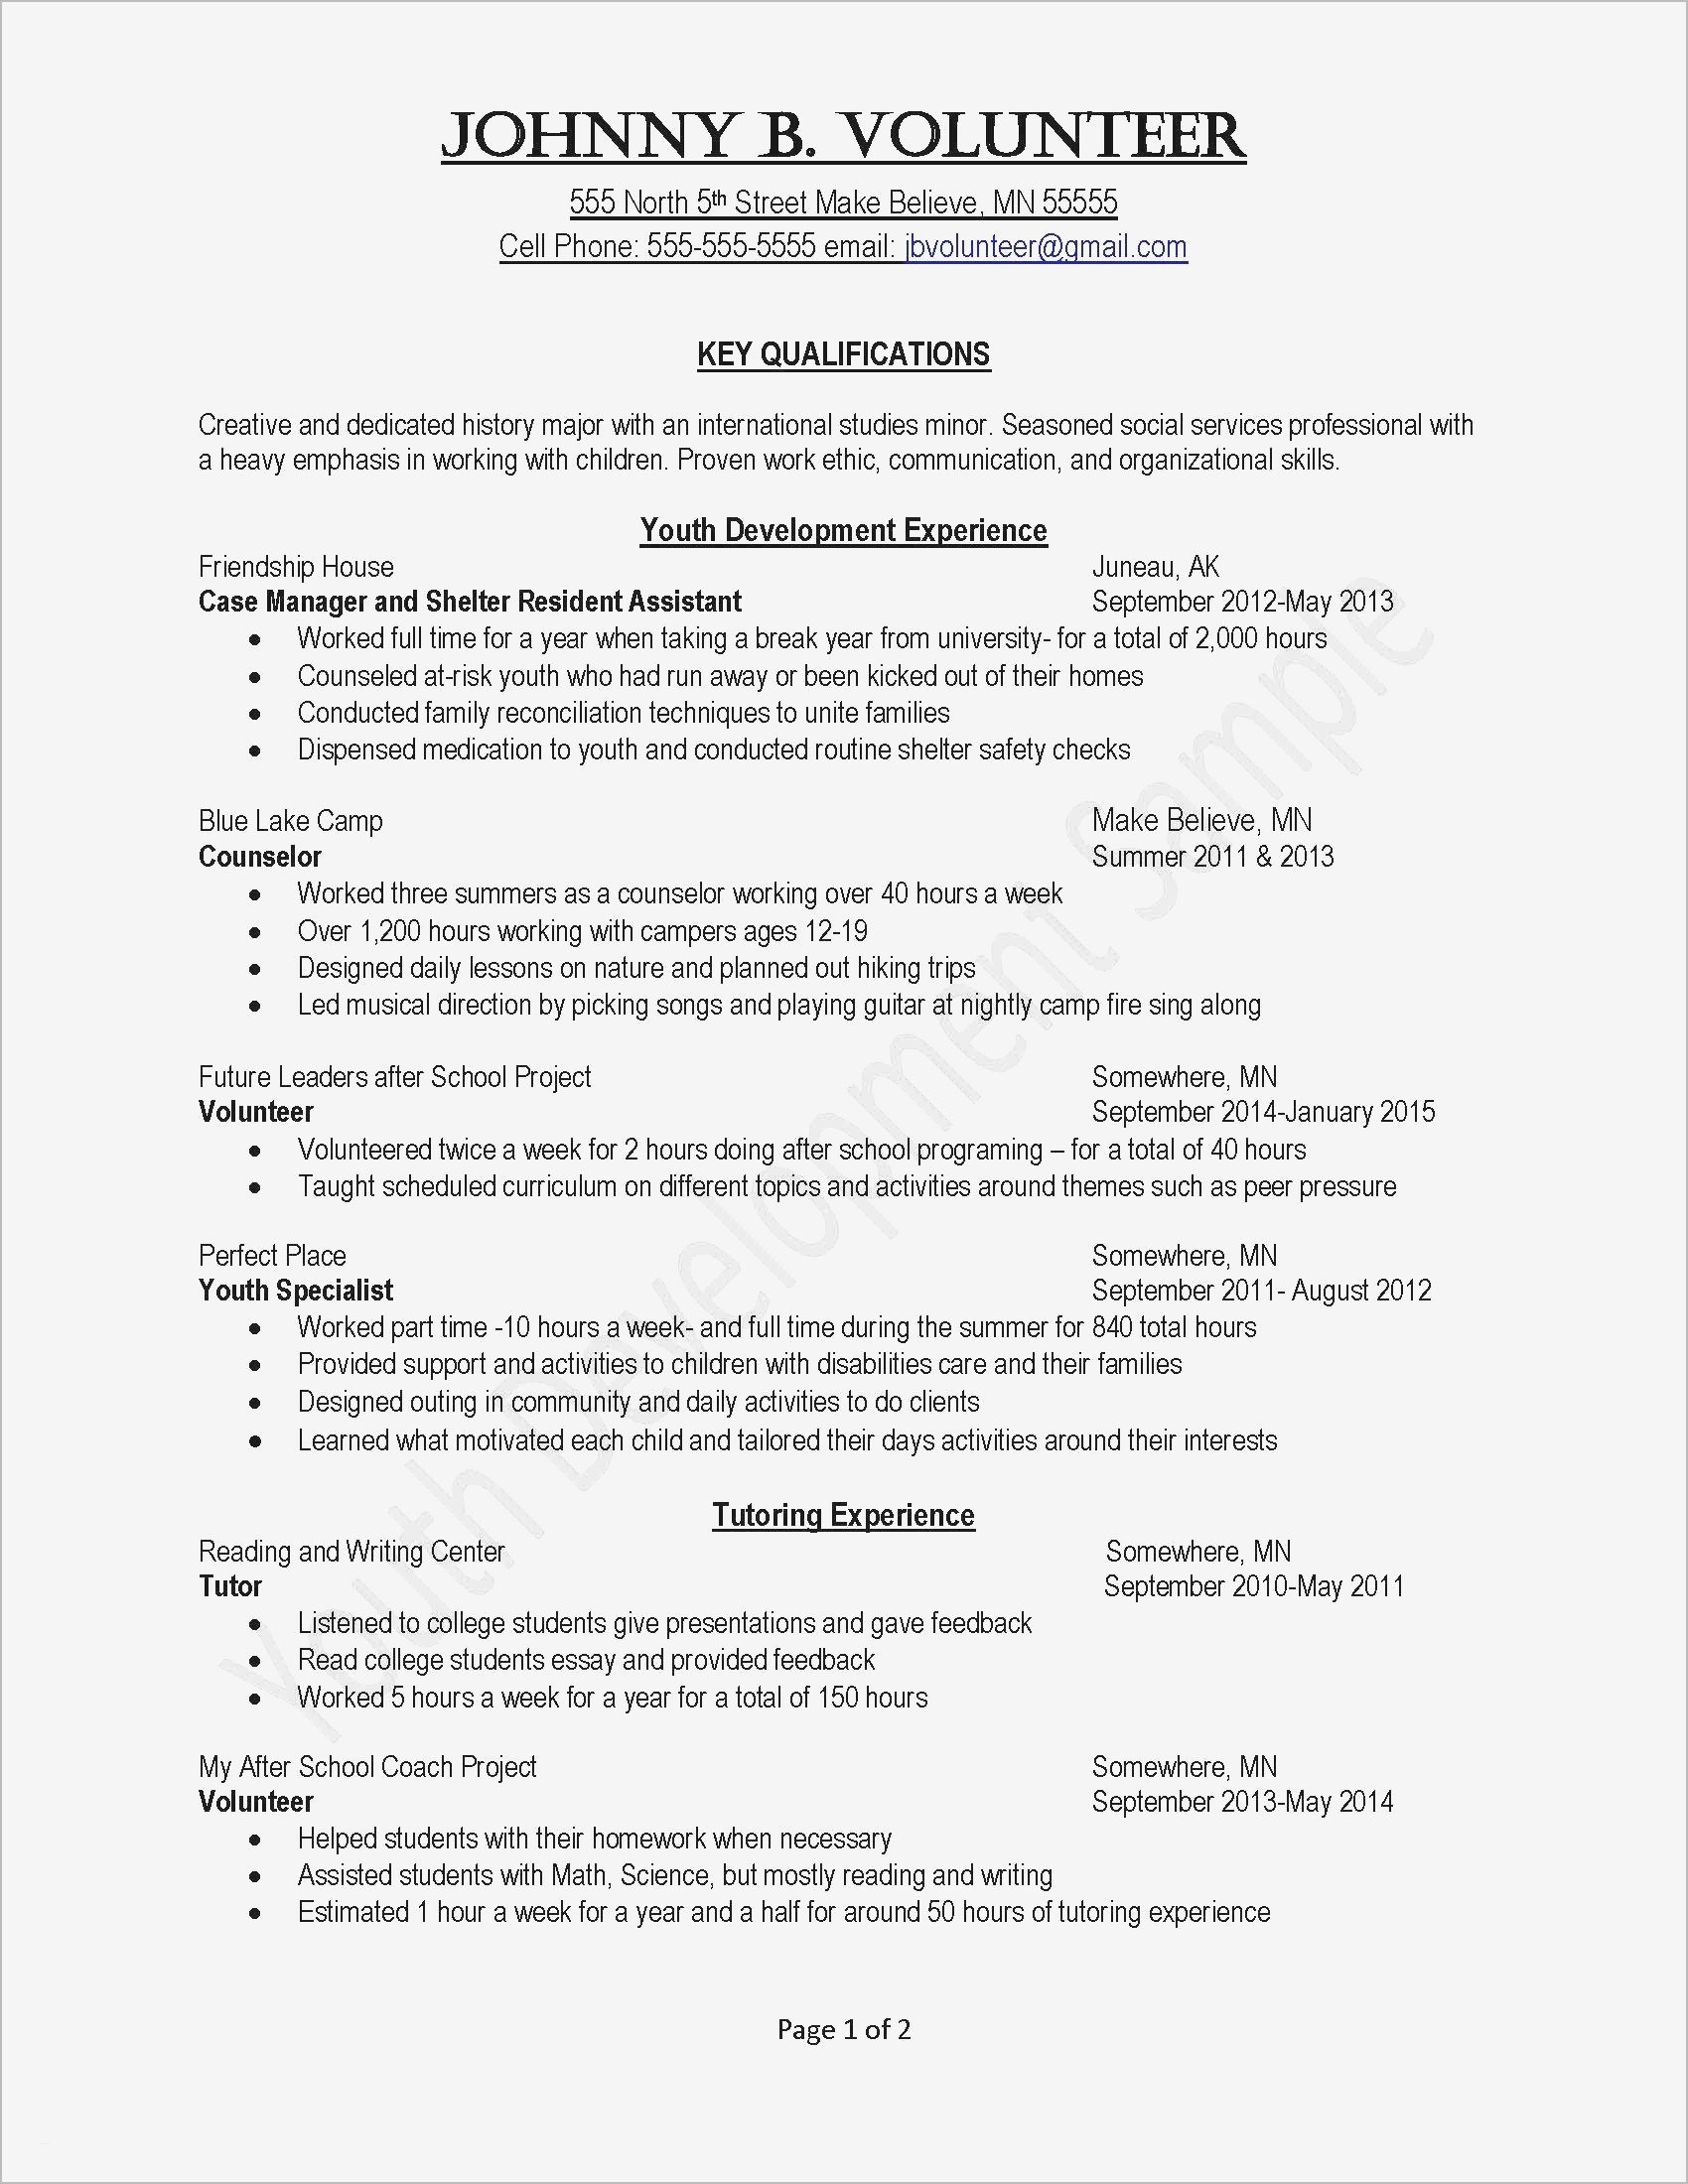 Email Template for Letter Of Recommendation - Fresh Letter Re Mendation Template for Student